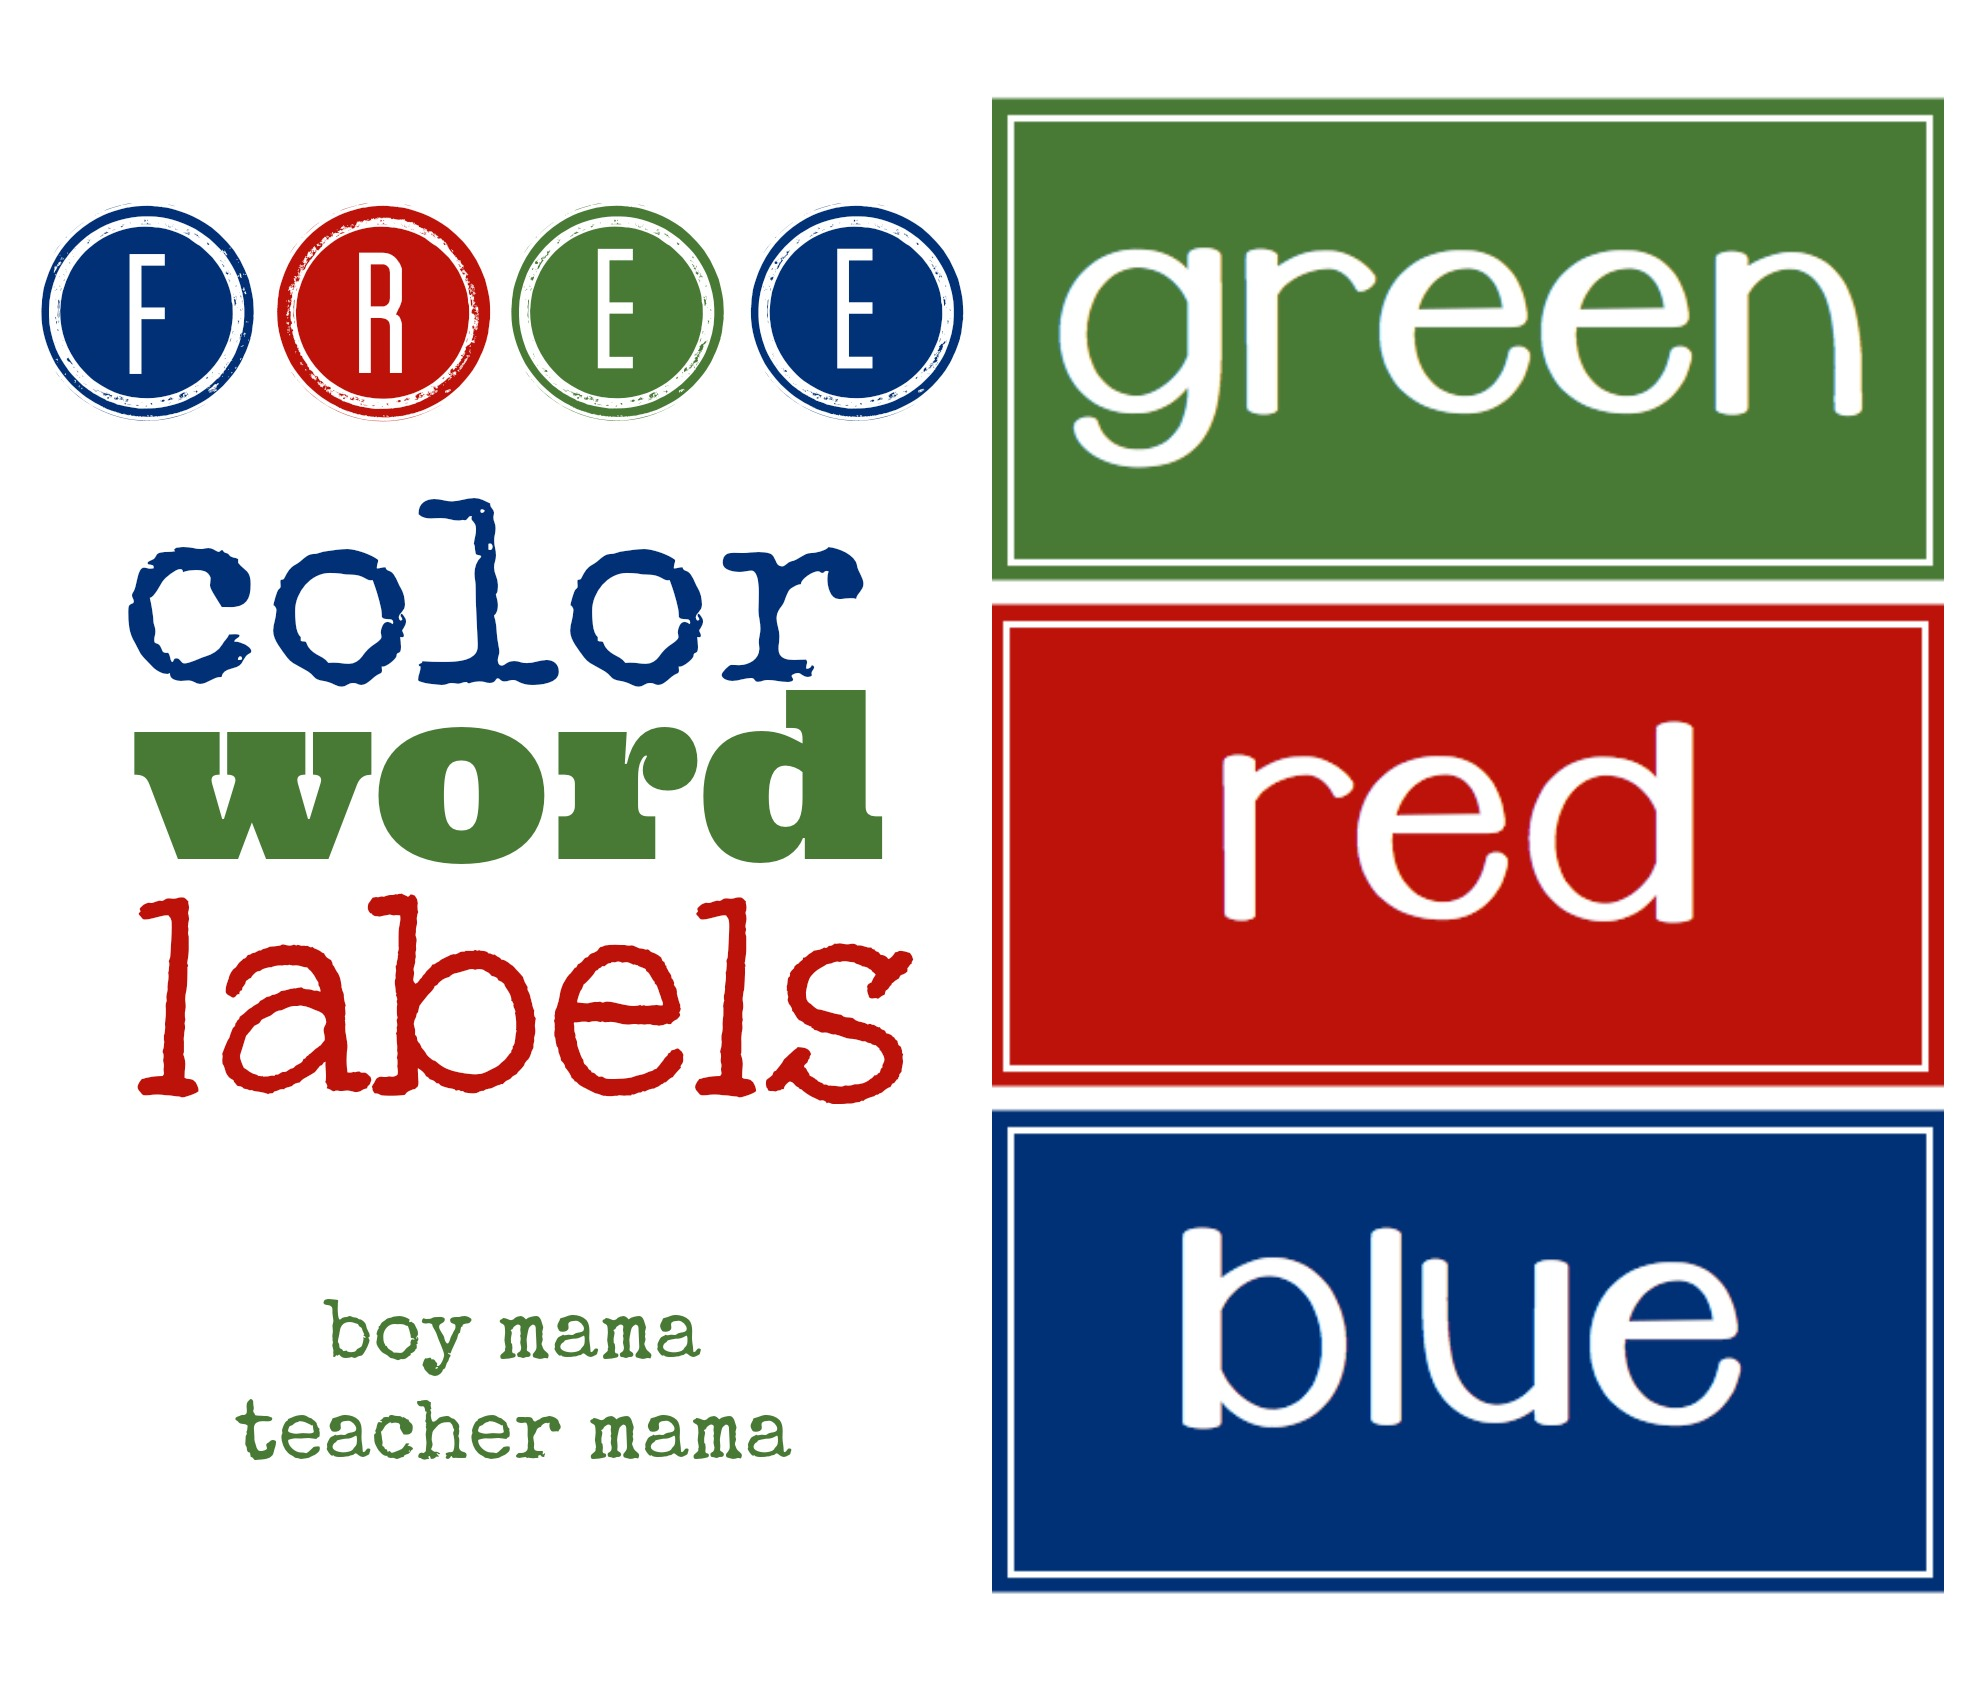 photograph relating to Free Printable Classroom Labels for Preschoolers identify Trainer Mama: Free of charge Coloration Phrase Labels - Boy Mama Instructor Mama